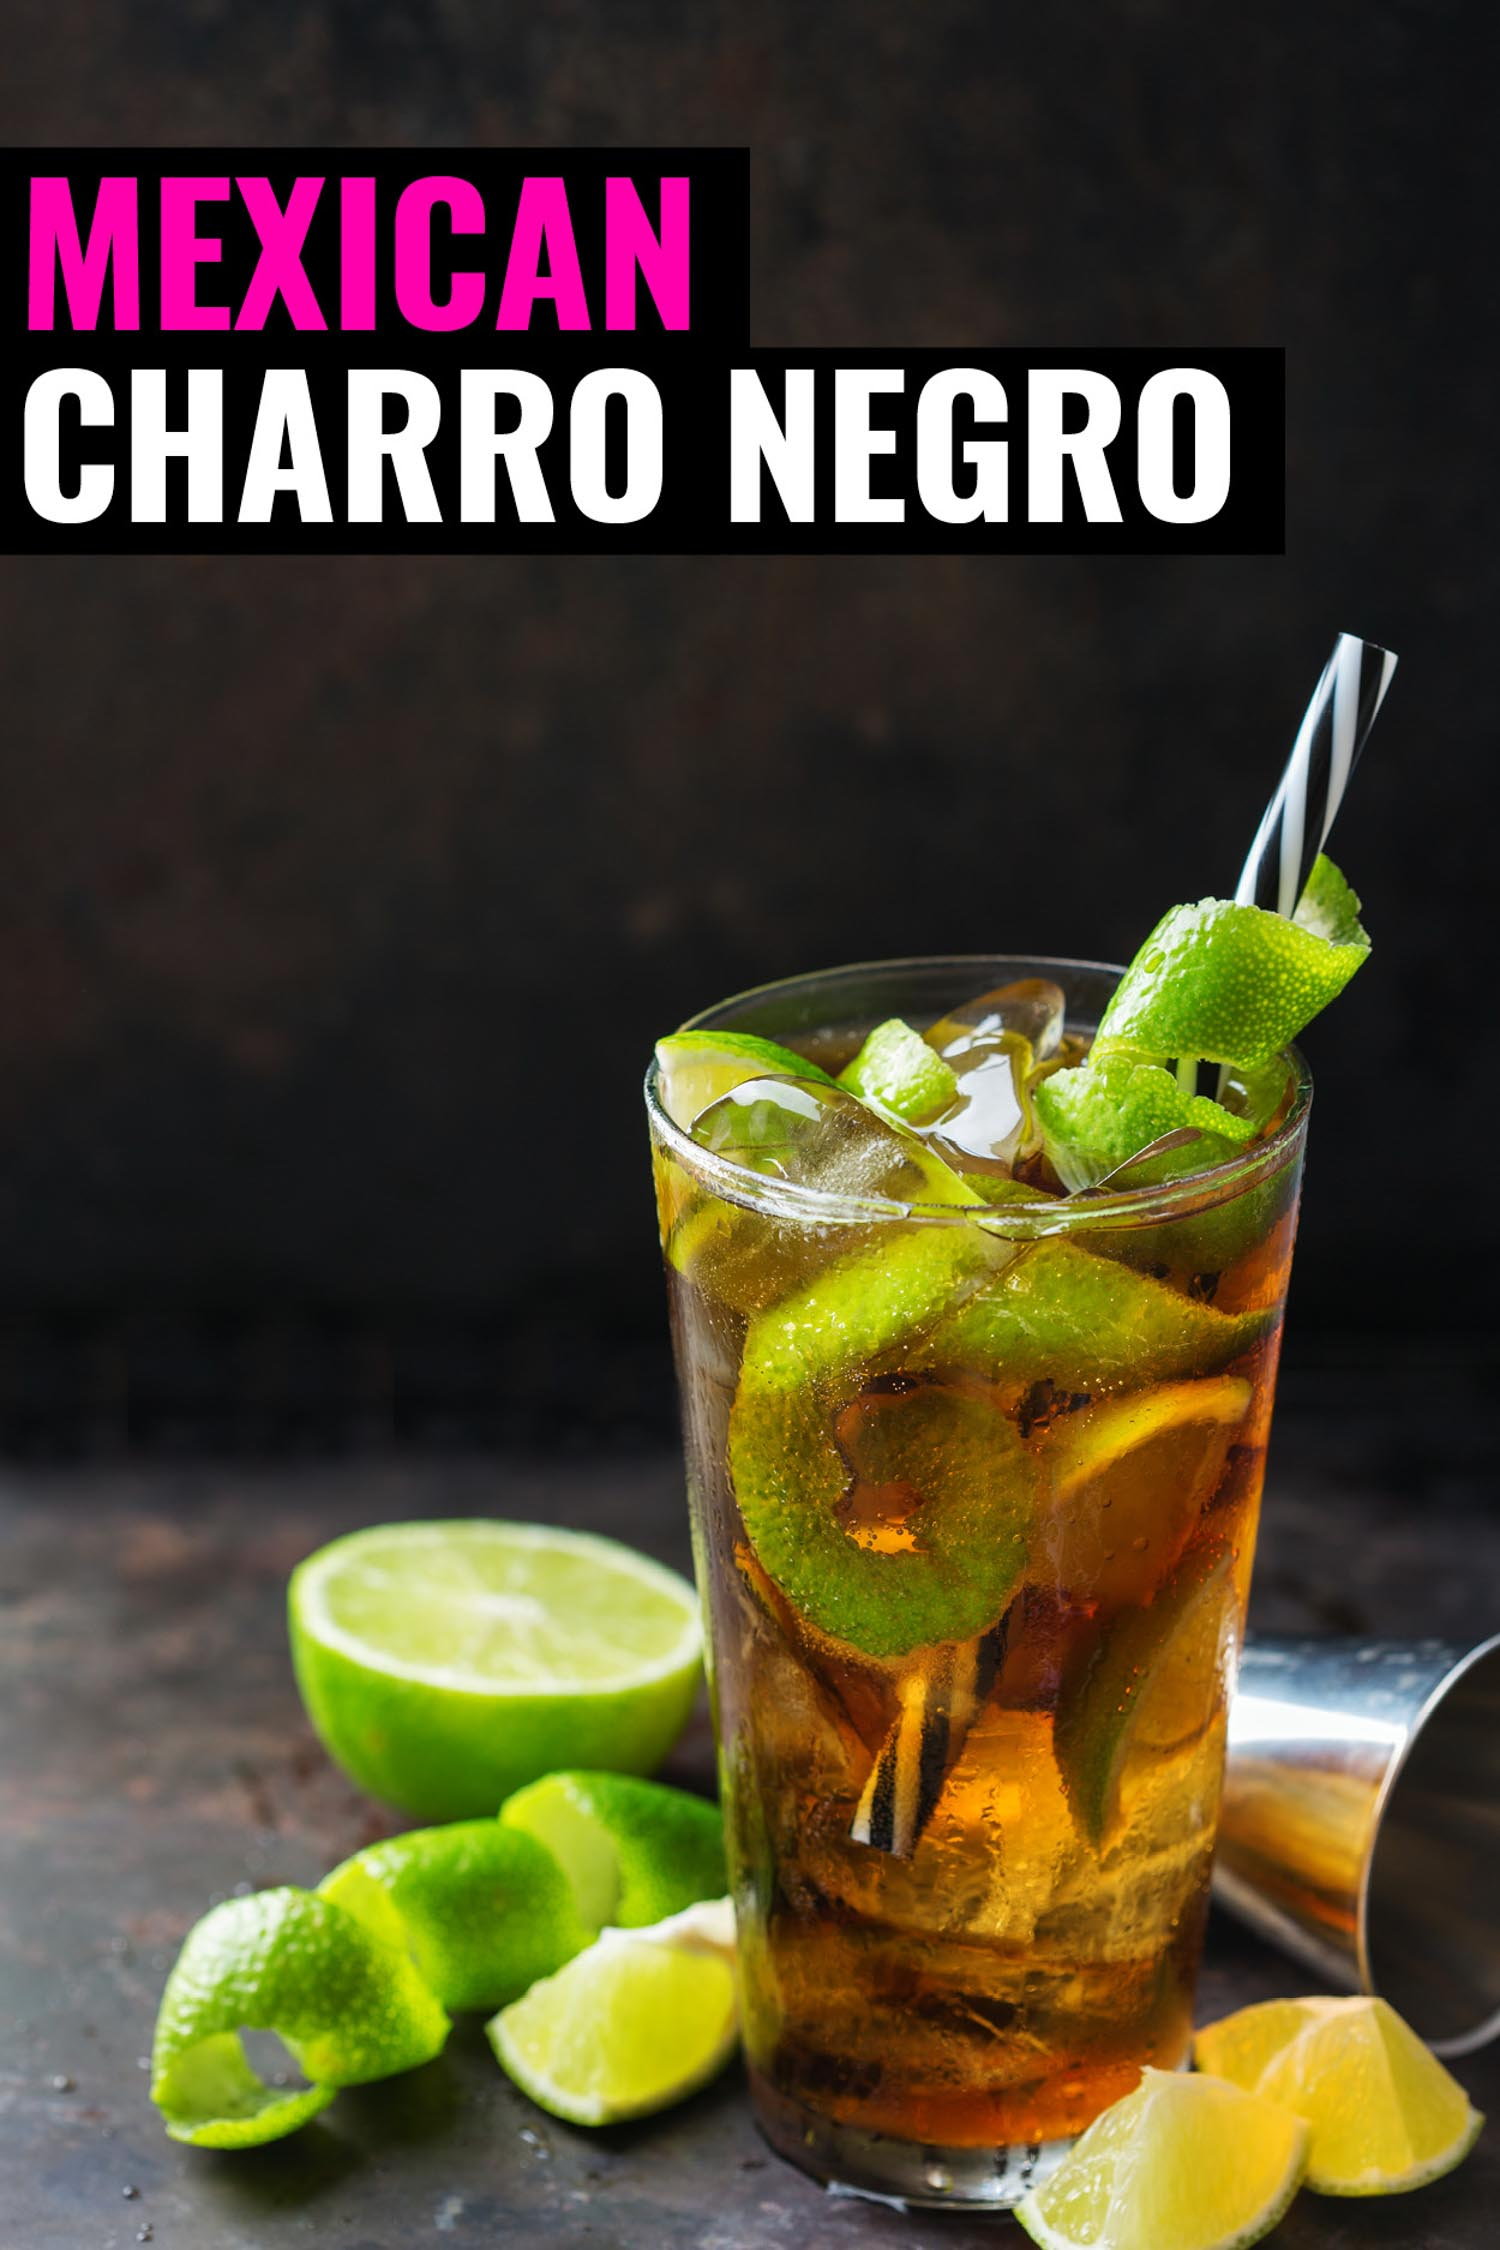 Charro negro tequila cocktail with lime in a glass on a black background